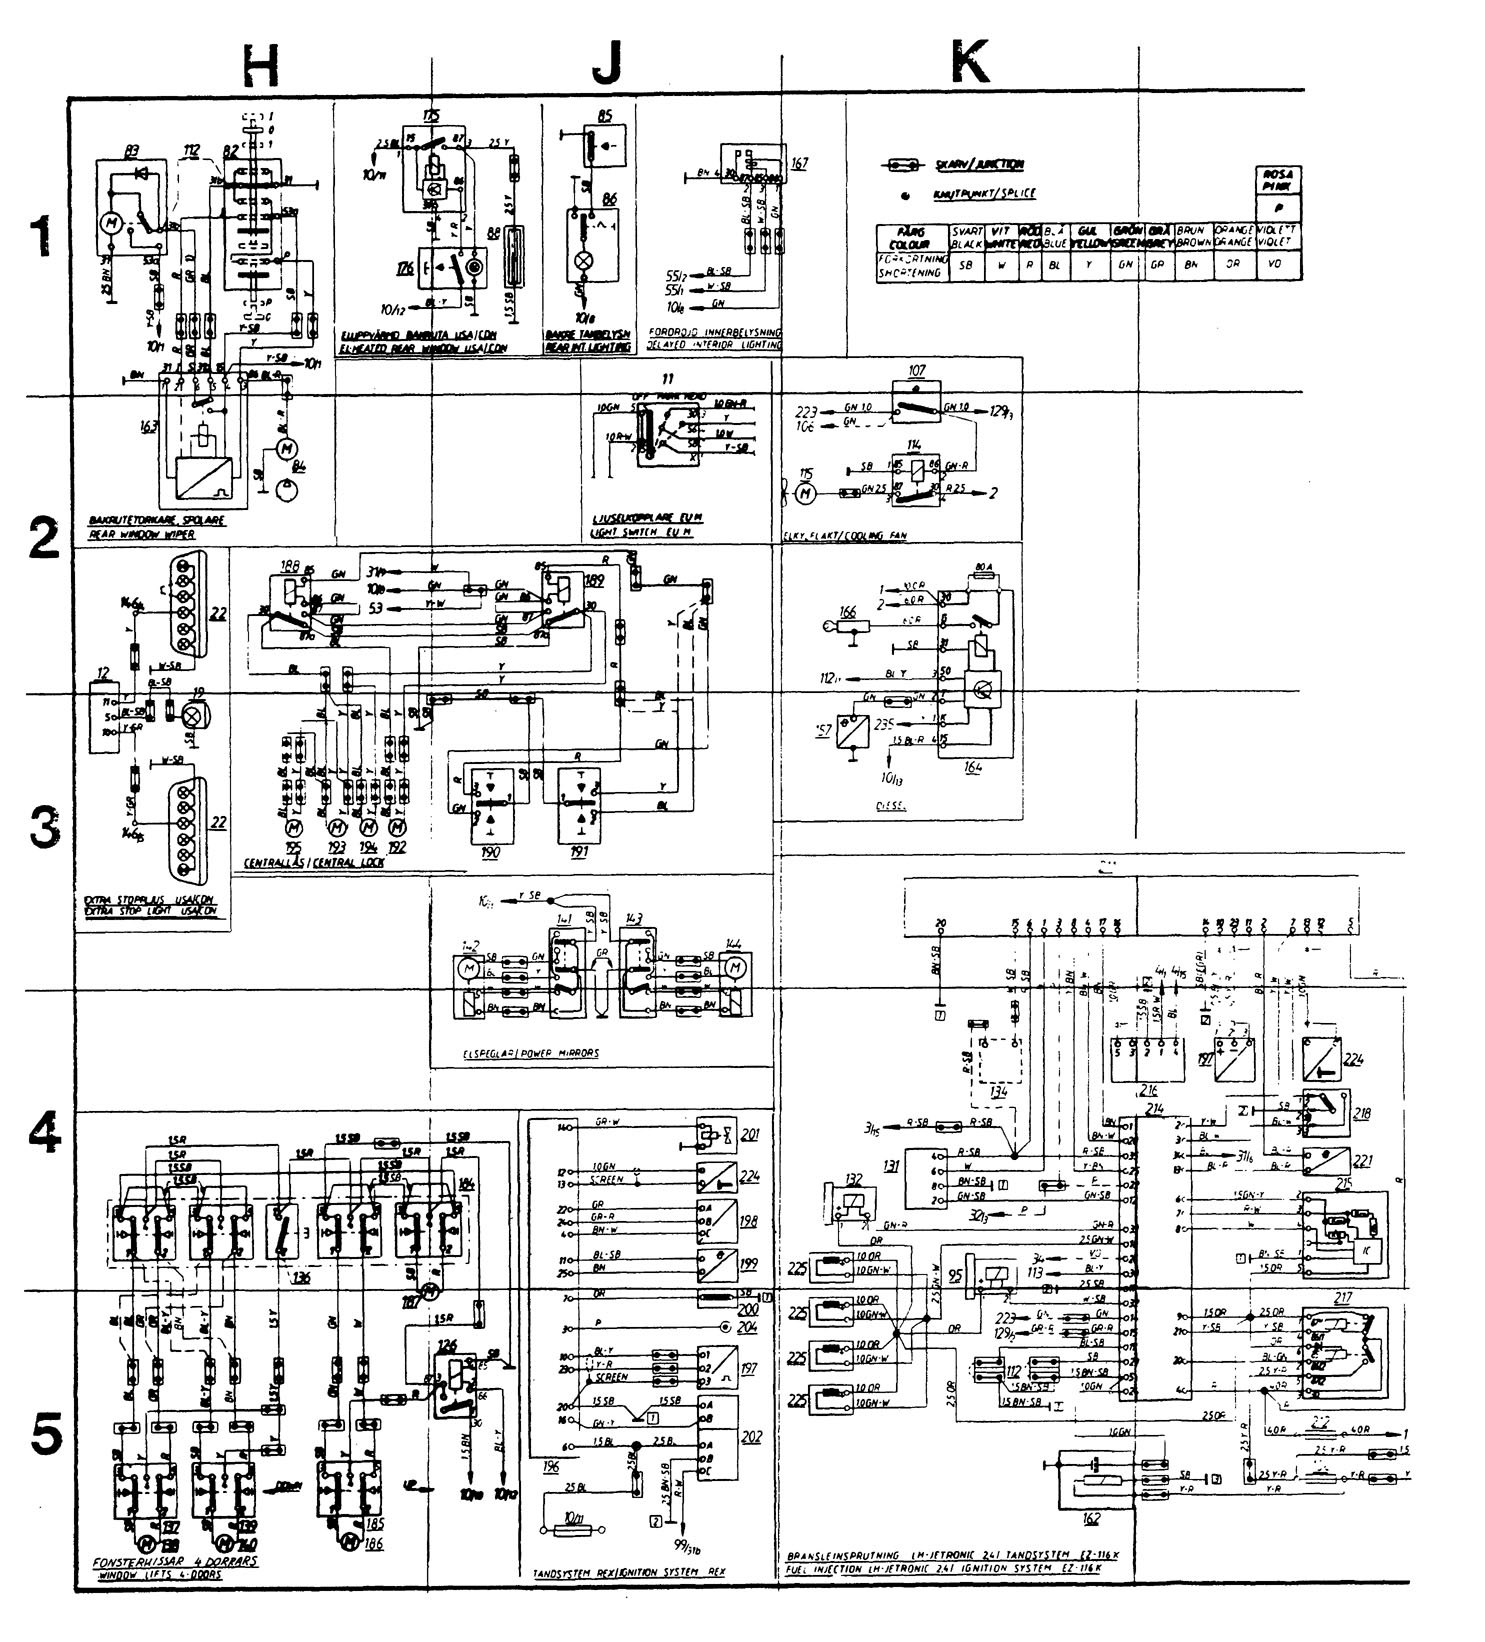 2001 Bmw 325i Fuse Diagram Wiring Schematic 7 Series Box 330ci Another Blog About U2022 525i Diagrams